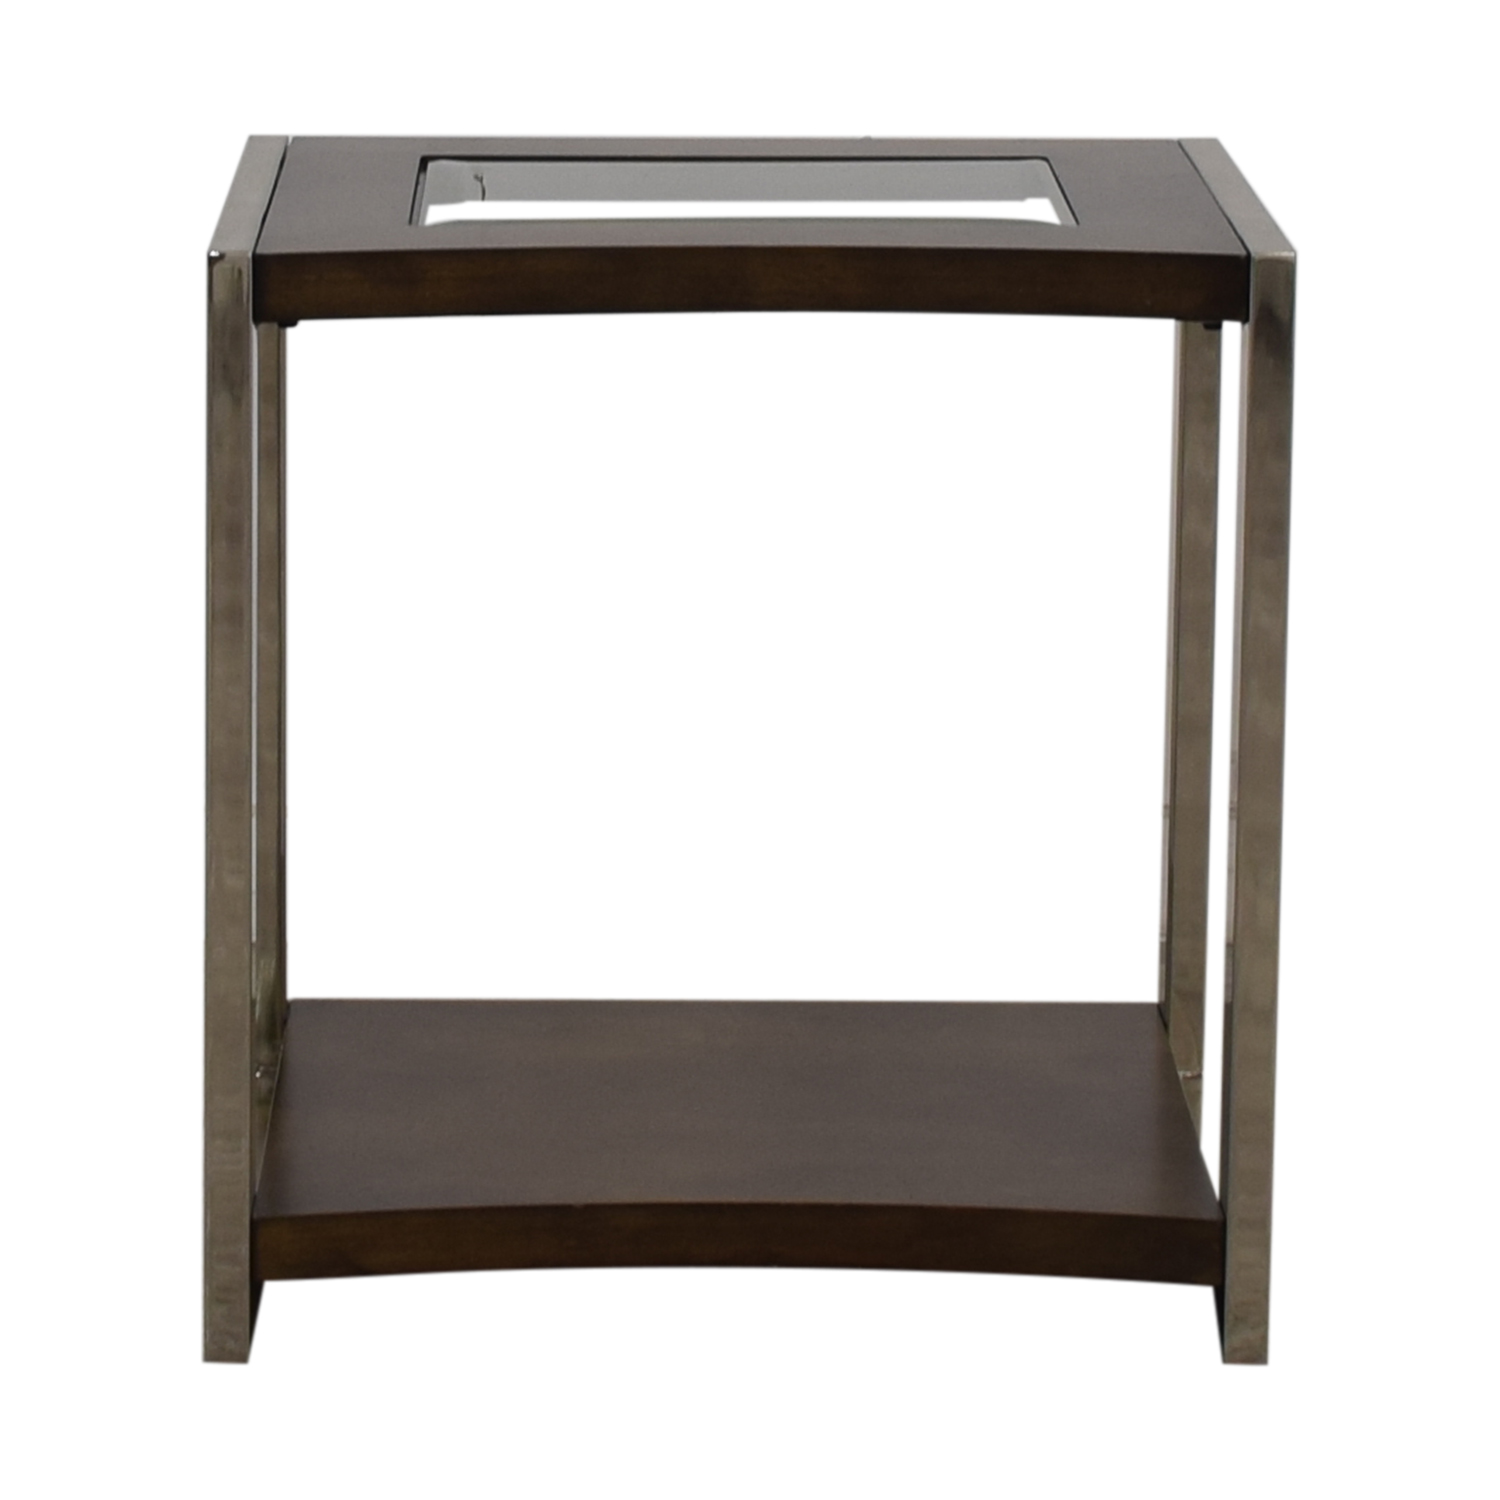 shop Raymour & Flanigan Raymour & Flanigan Glass Wood and Chrome End Table online